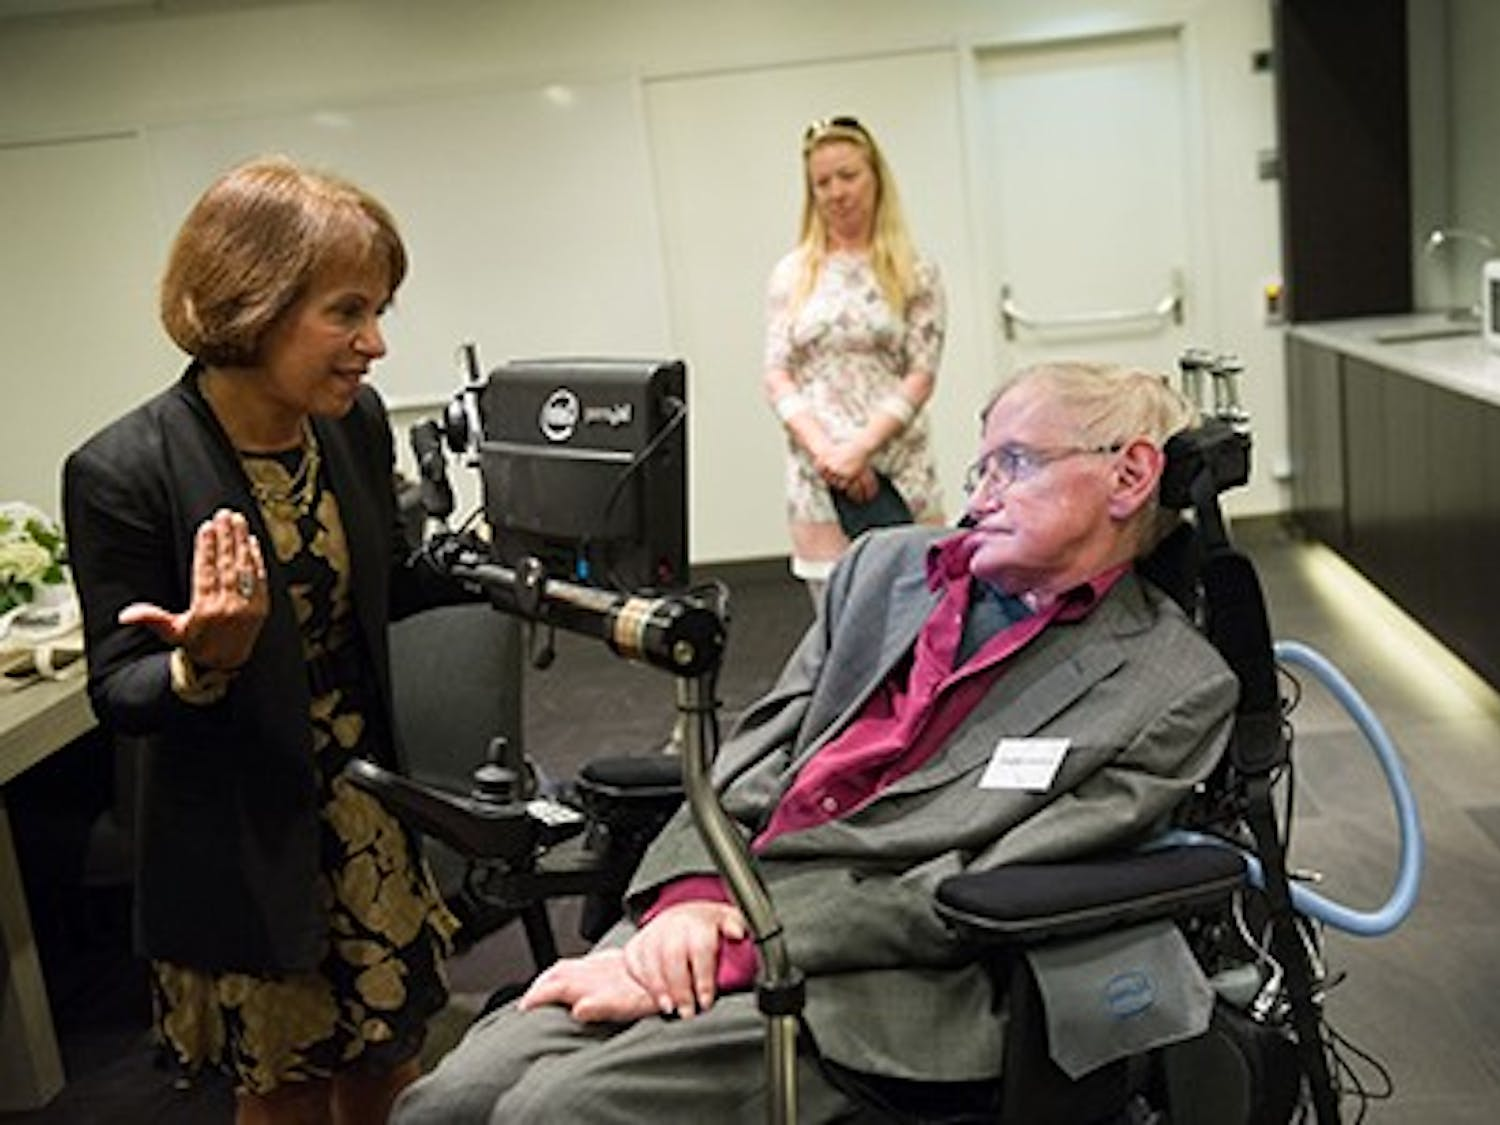 2015 August 24:th  Stephen Hawking Lecture in Waterfront StockholmCopyright: Photographer Ulf Sirborn, Box 38081, 100 64 Stockholm, Sweden,phone +46 720461654, e-mail:ulf.sirborn@brevet.nu